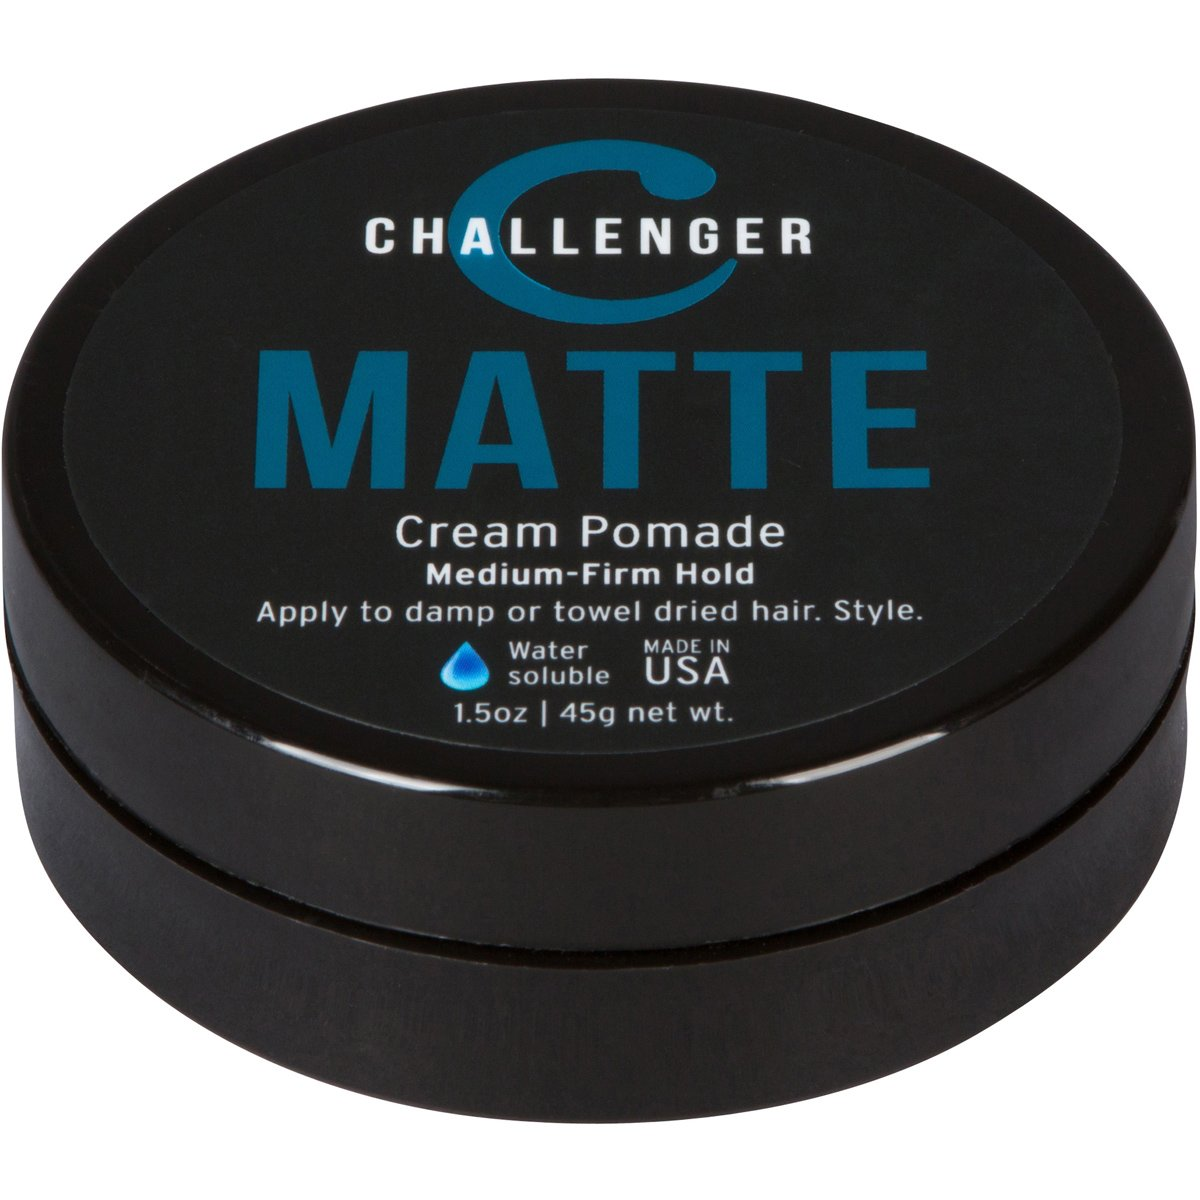 Amazoncom Strong Semi Matte Paste Challenger 15OZ Firm Hold